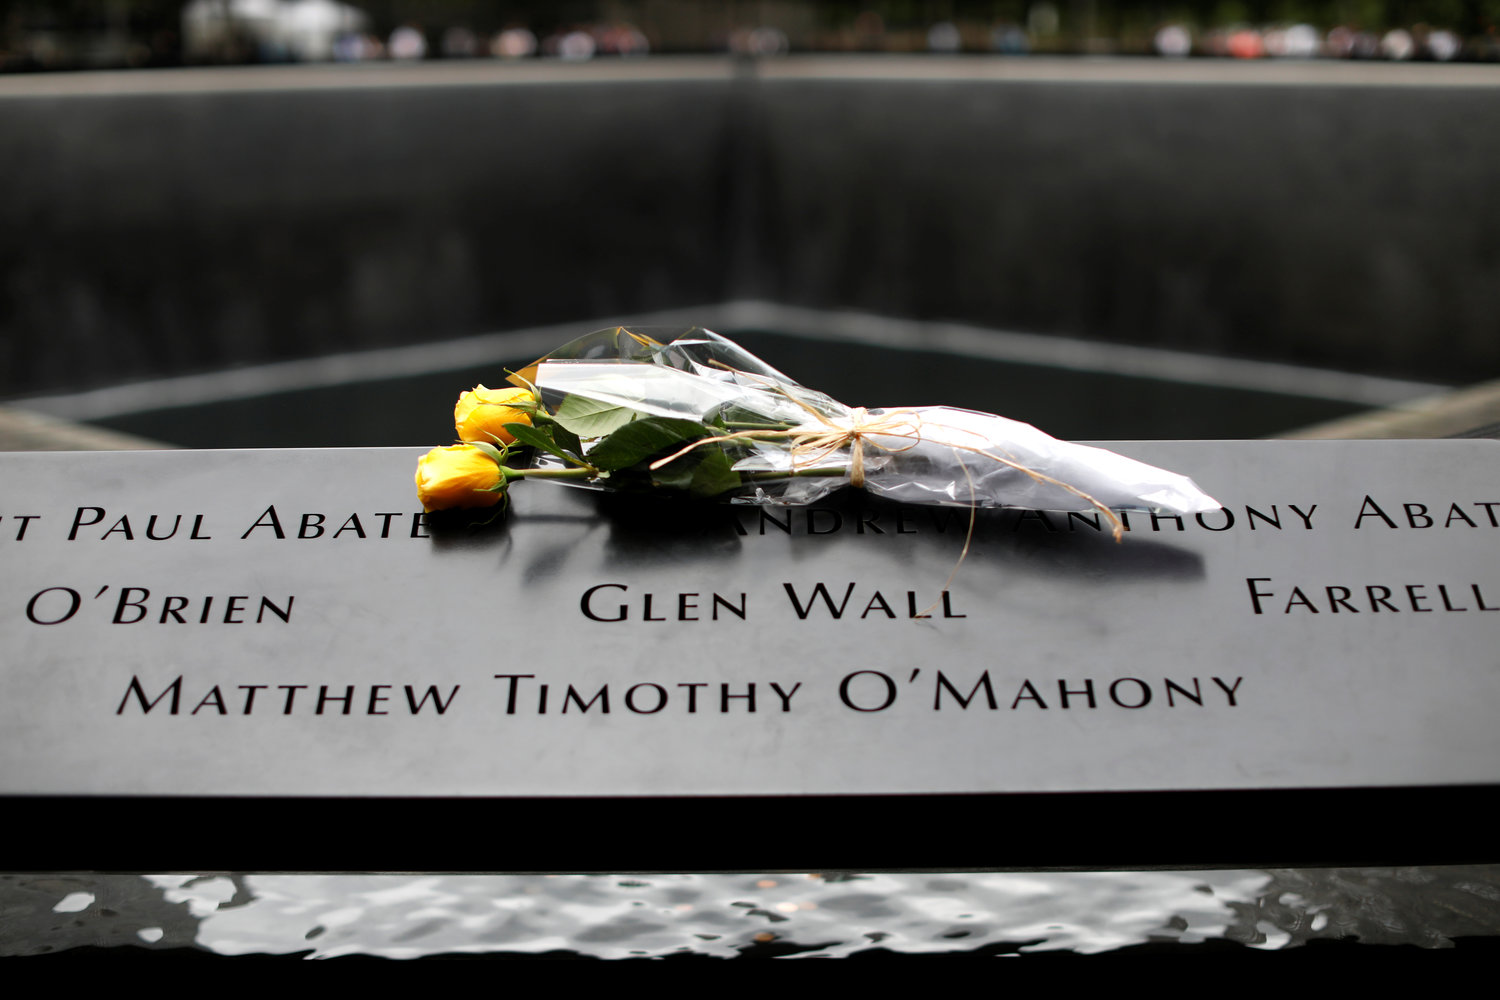 Flowers are seen left at the edge of the north reflecting pool at the 9/11 Memorial and Museum in New York City, Sept. 10, 2019, the eve of the 18th anniversary of the 9/11 terrorist attacks. Msgr. John Delendick, a longtime New York Fire Department chaplain, still recalls the attacks vividly. That first year after the attacks, he said, he doesn't remember how many funerals and memorial Masses he celebrated.